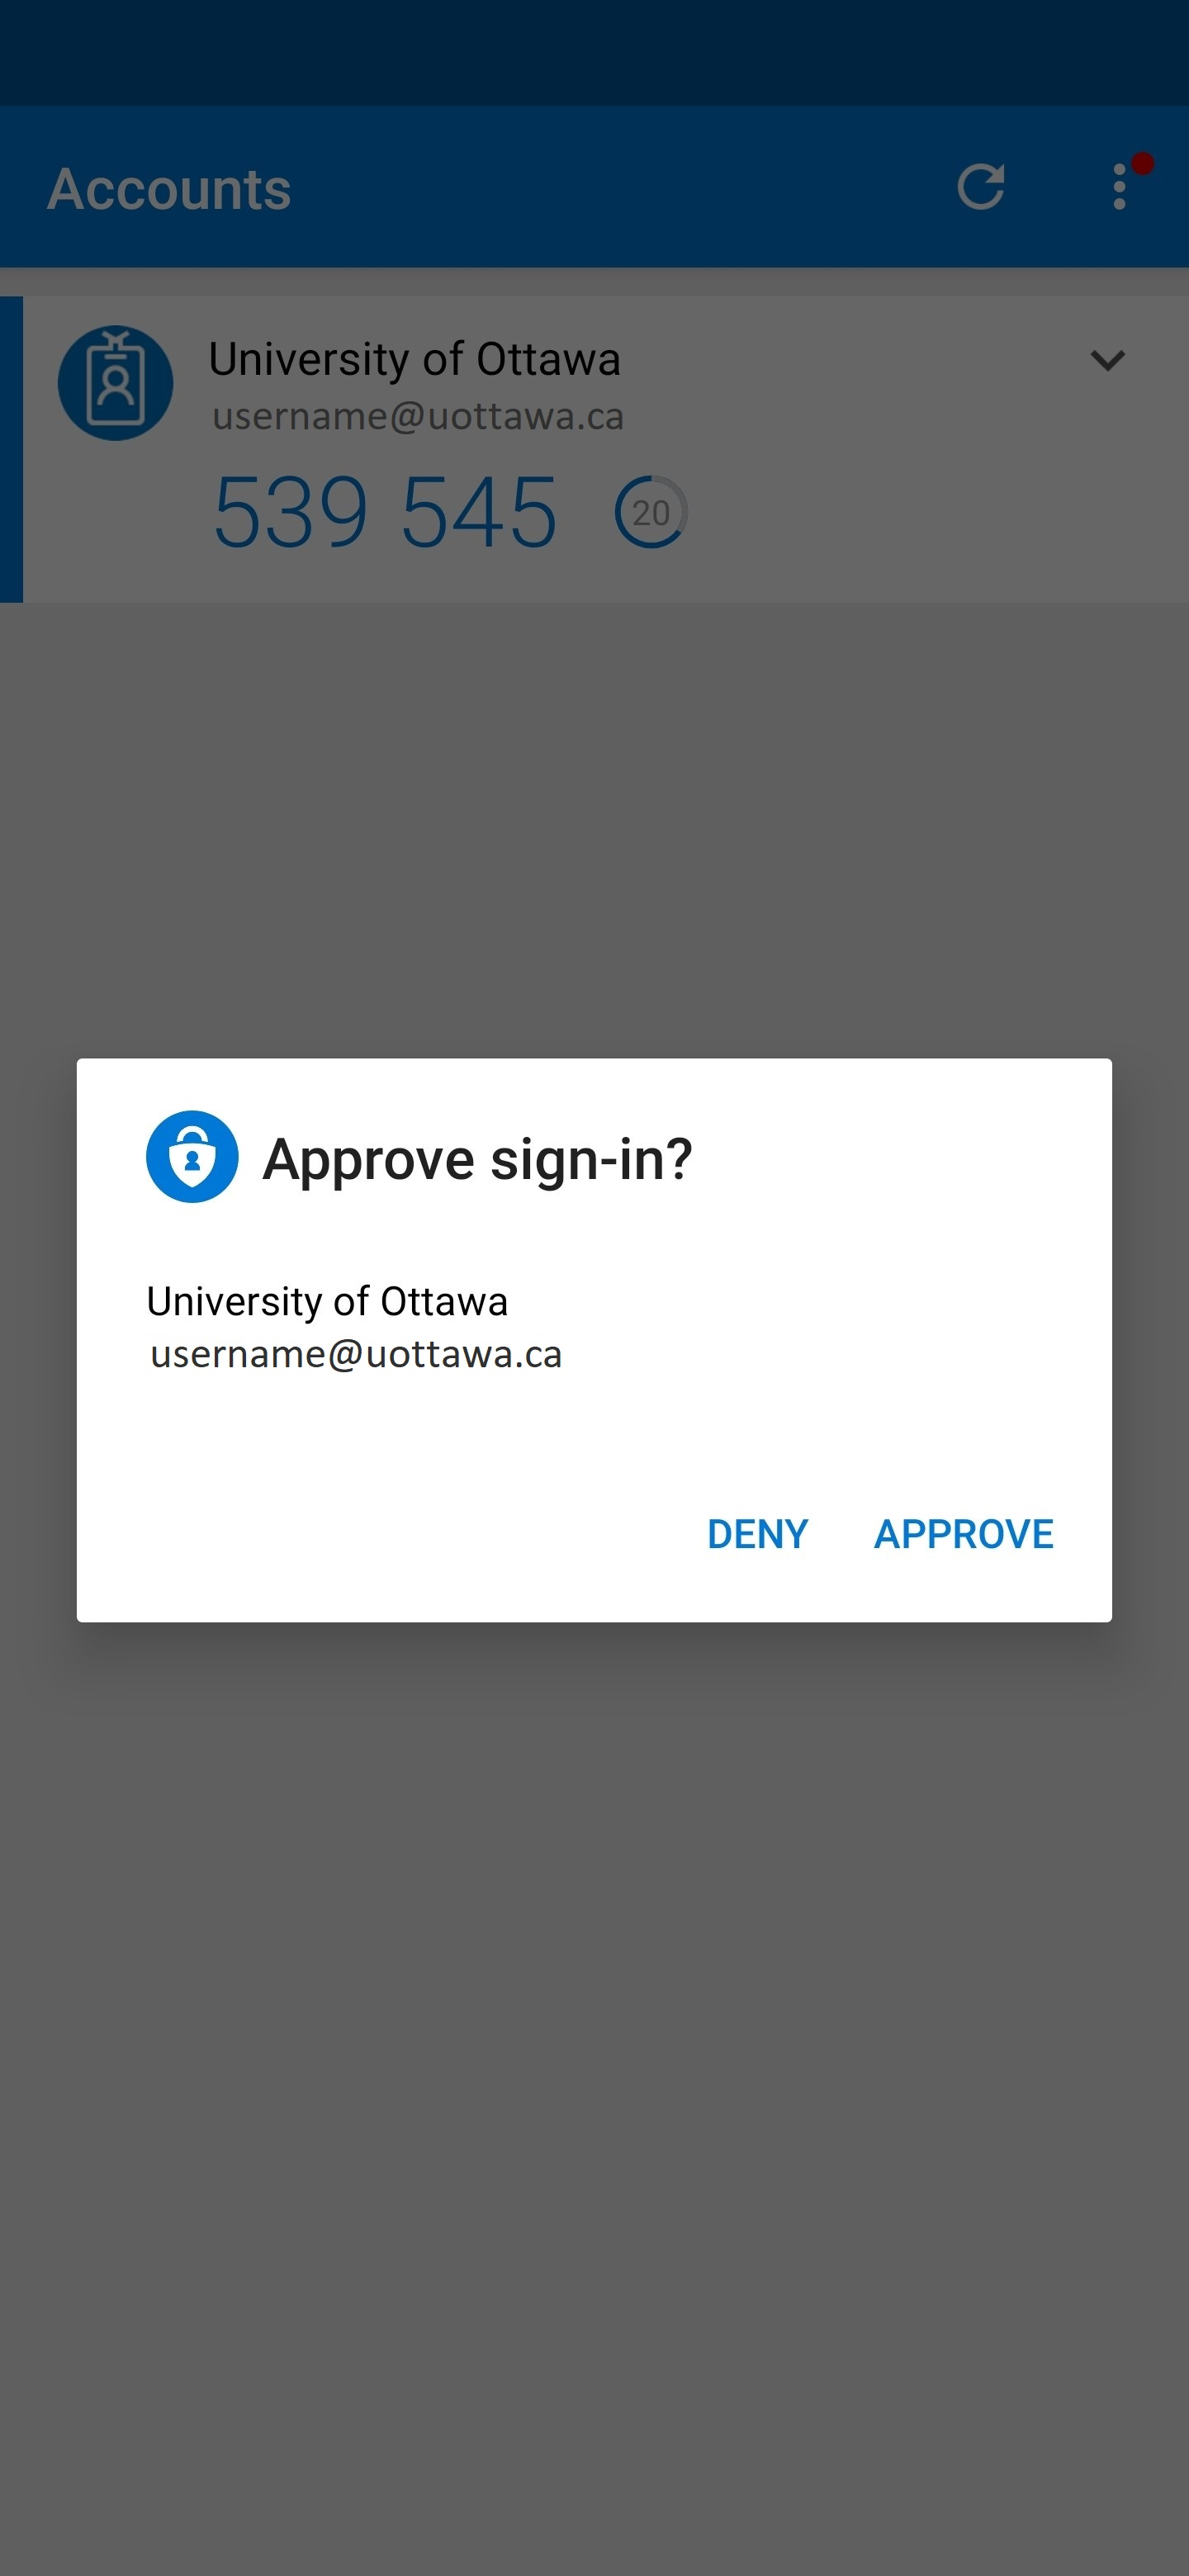 approve sign-in